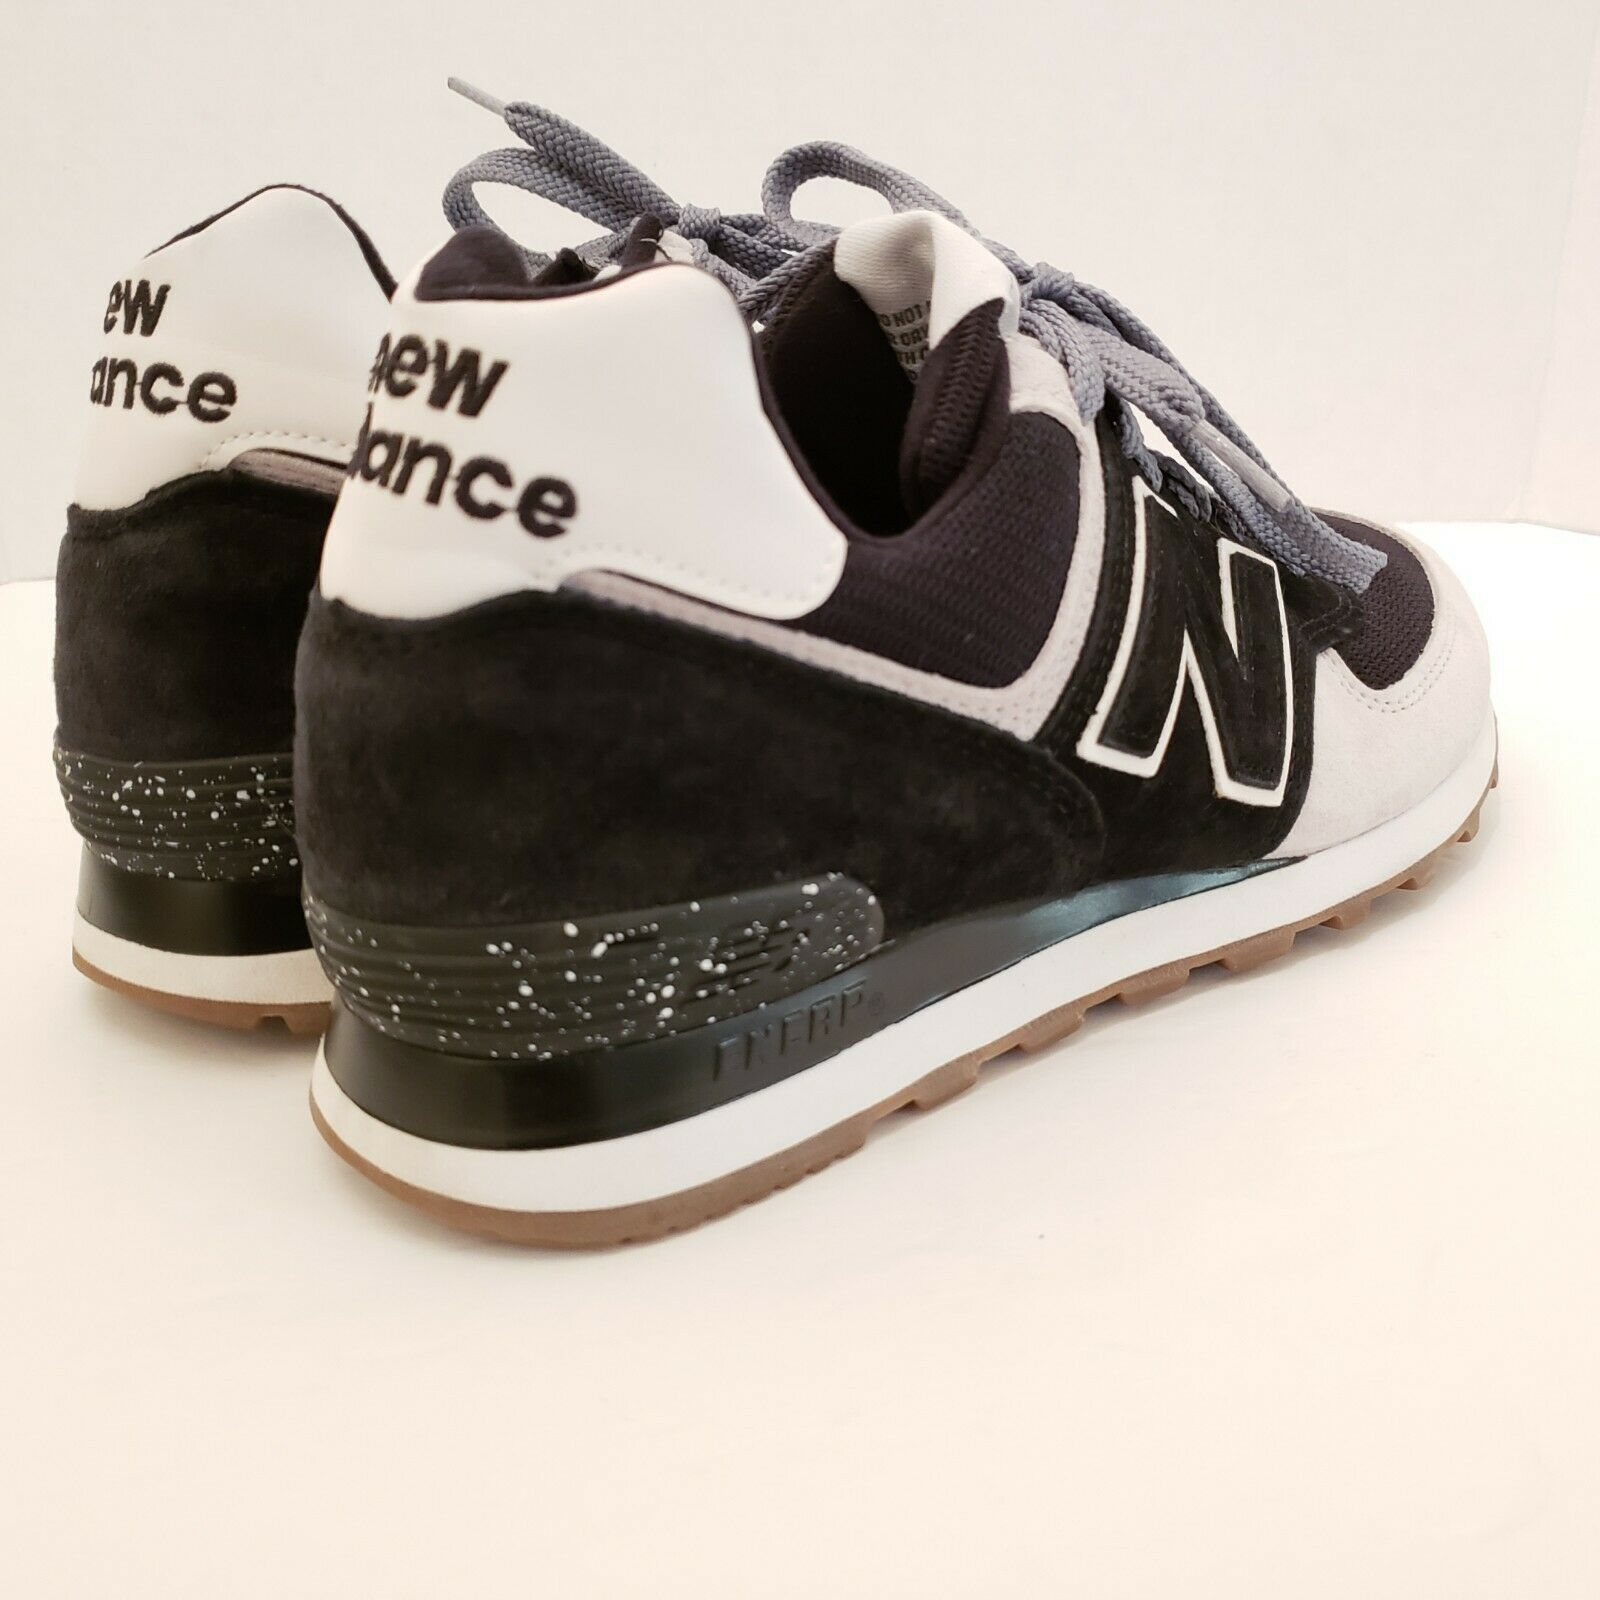 New Balance Men's Size 7 Black and White Running Sneakers USA Made Classic Shoe image 2